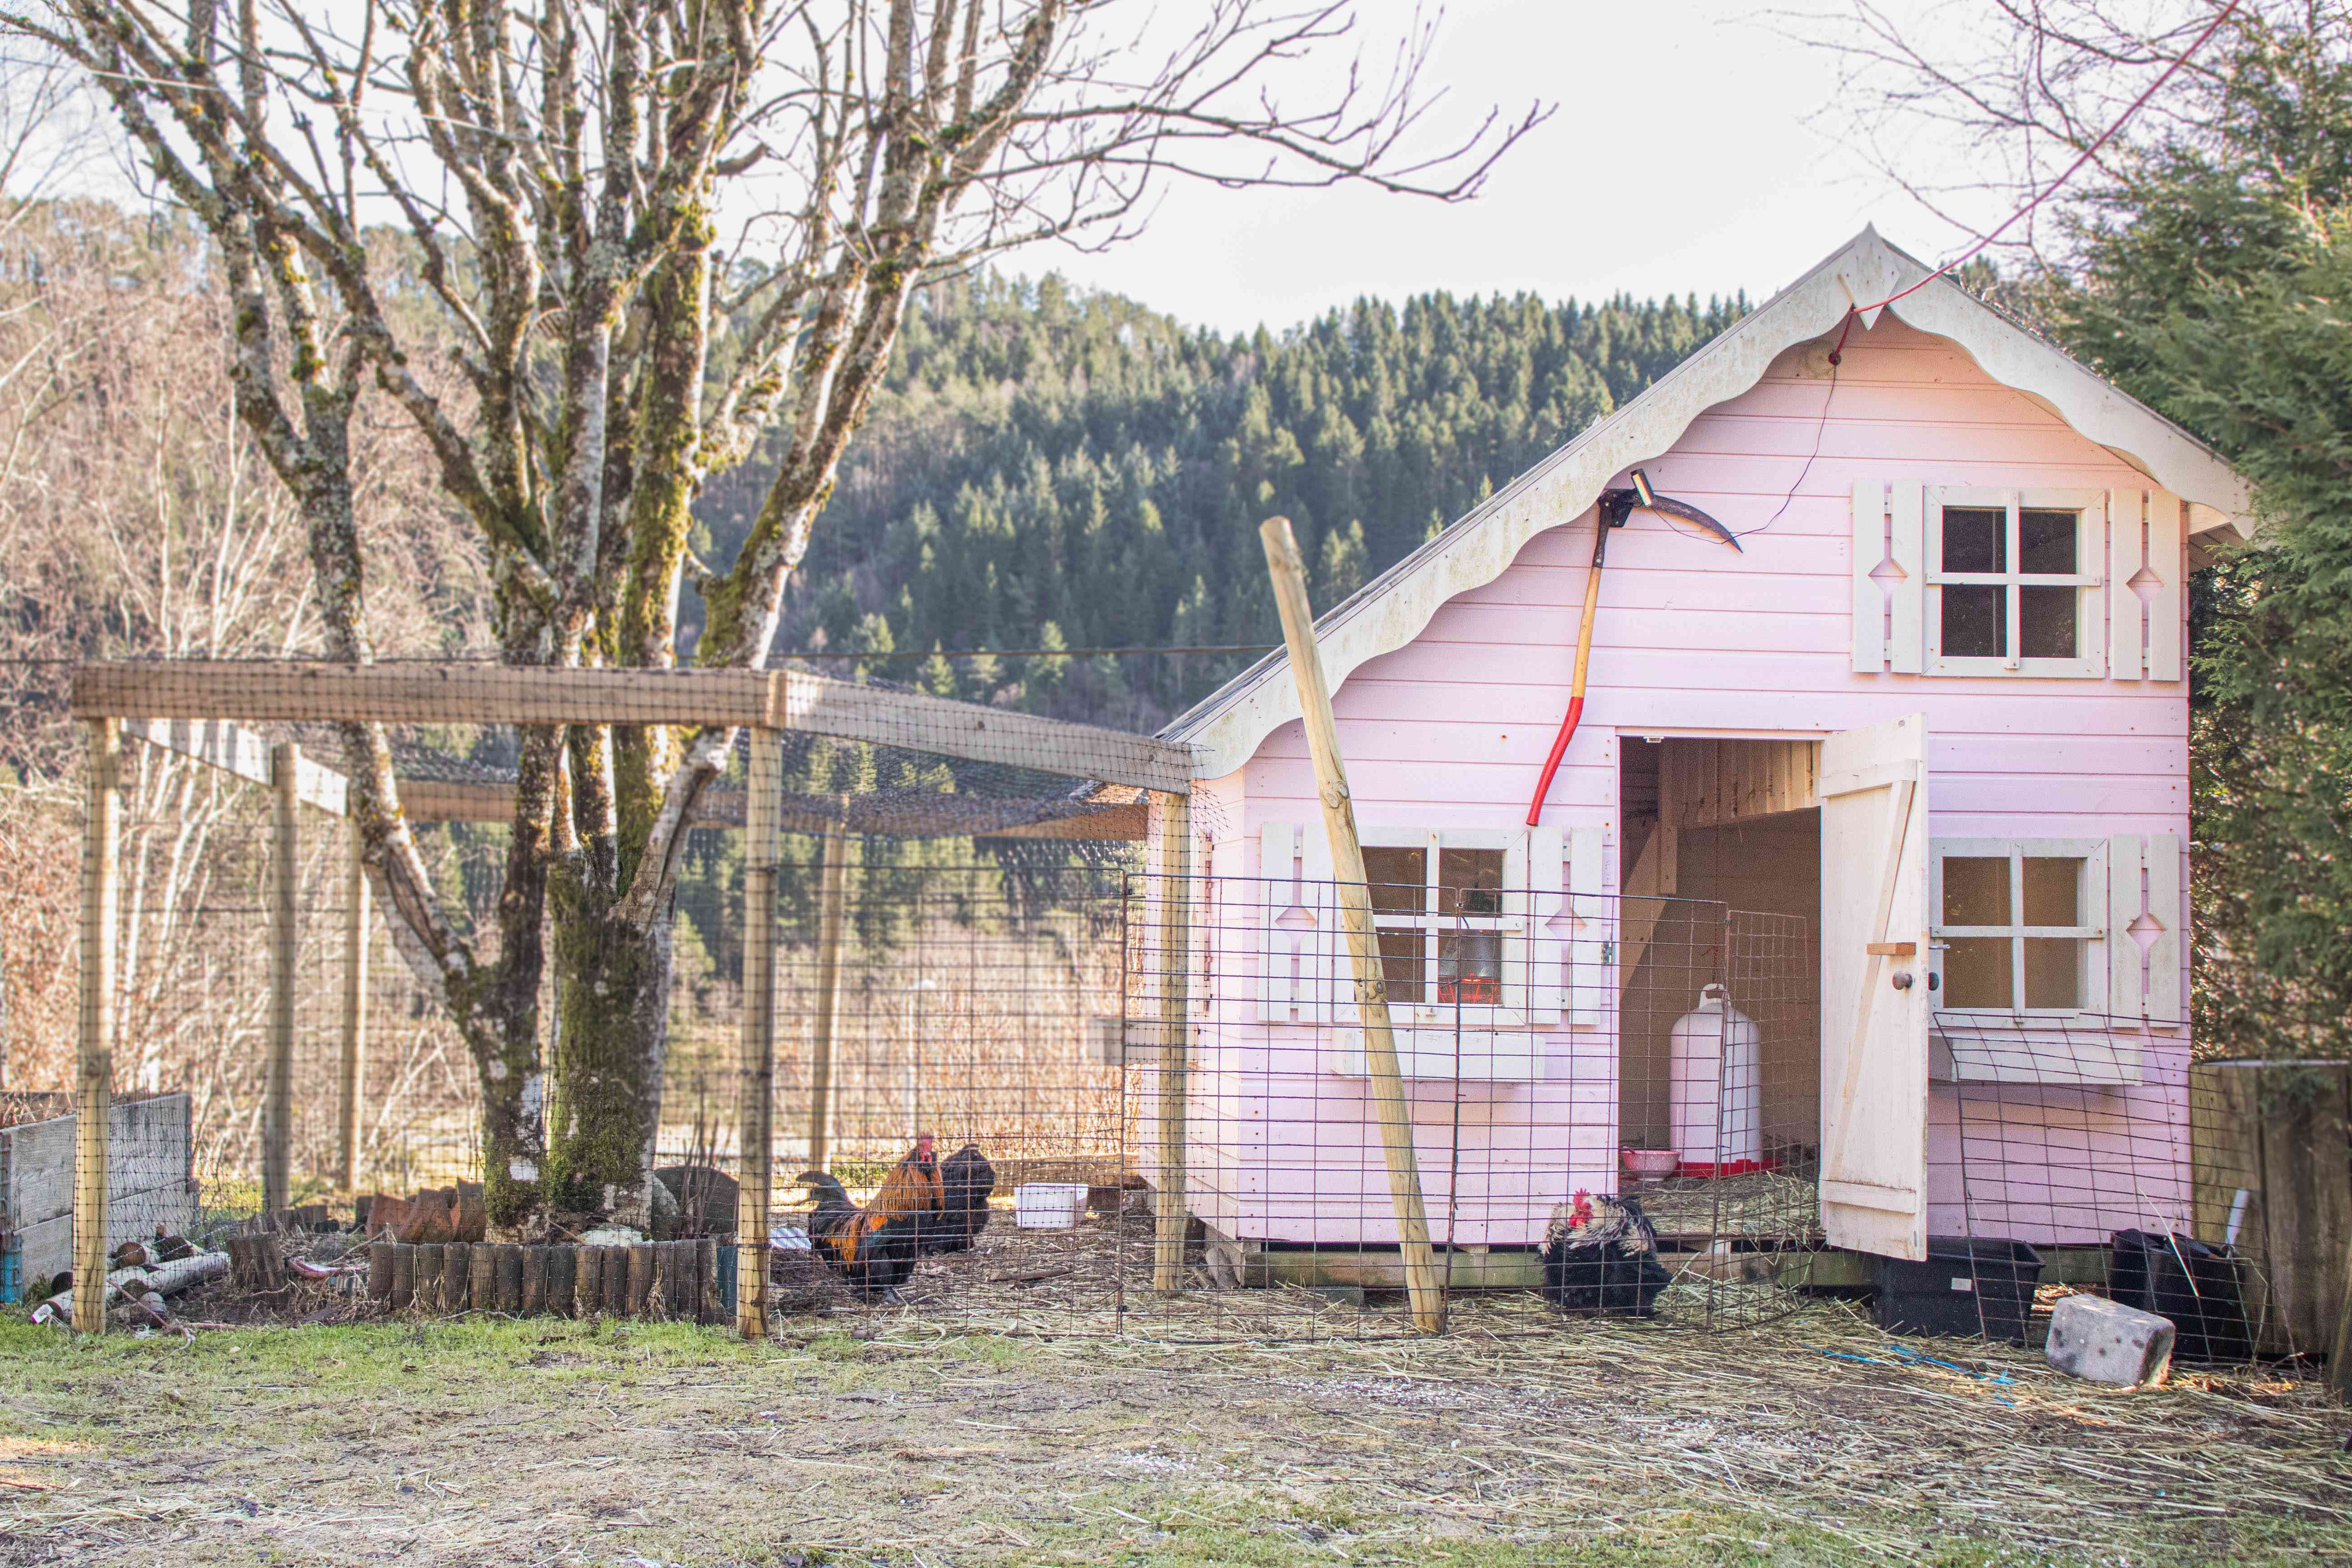 Pink chicken coop with chicken wired fence outside with chickens